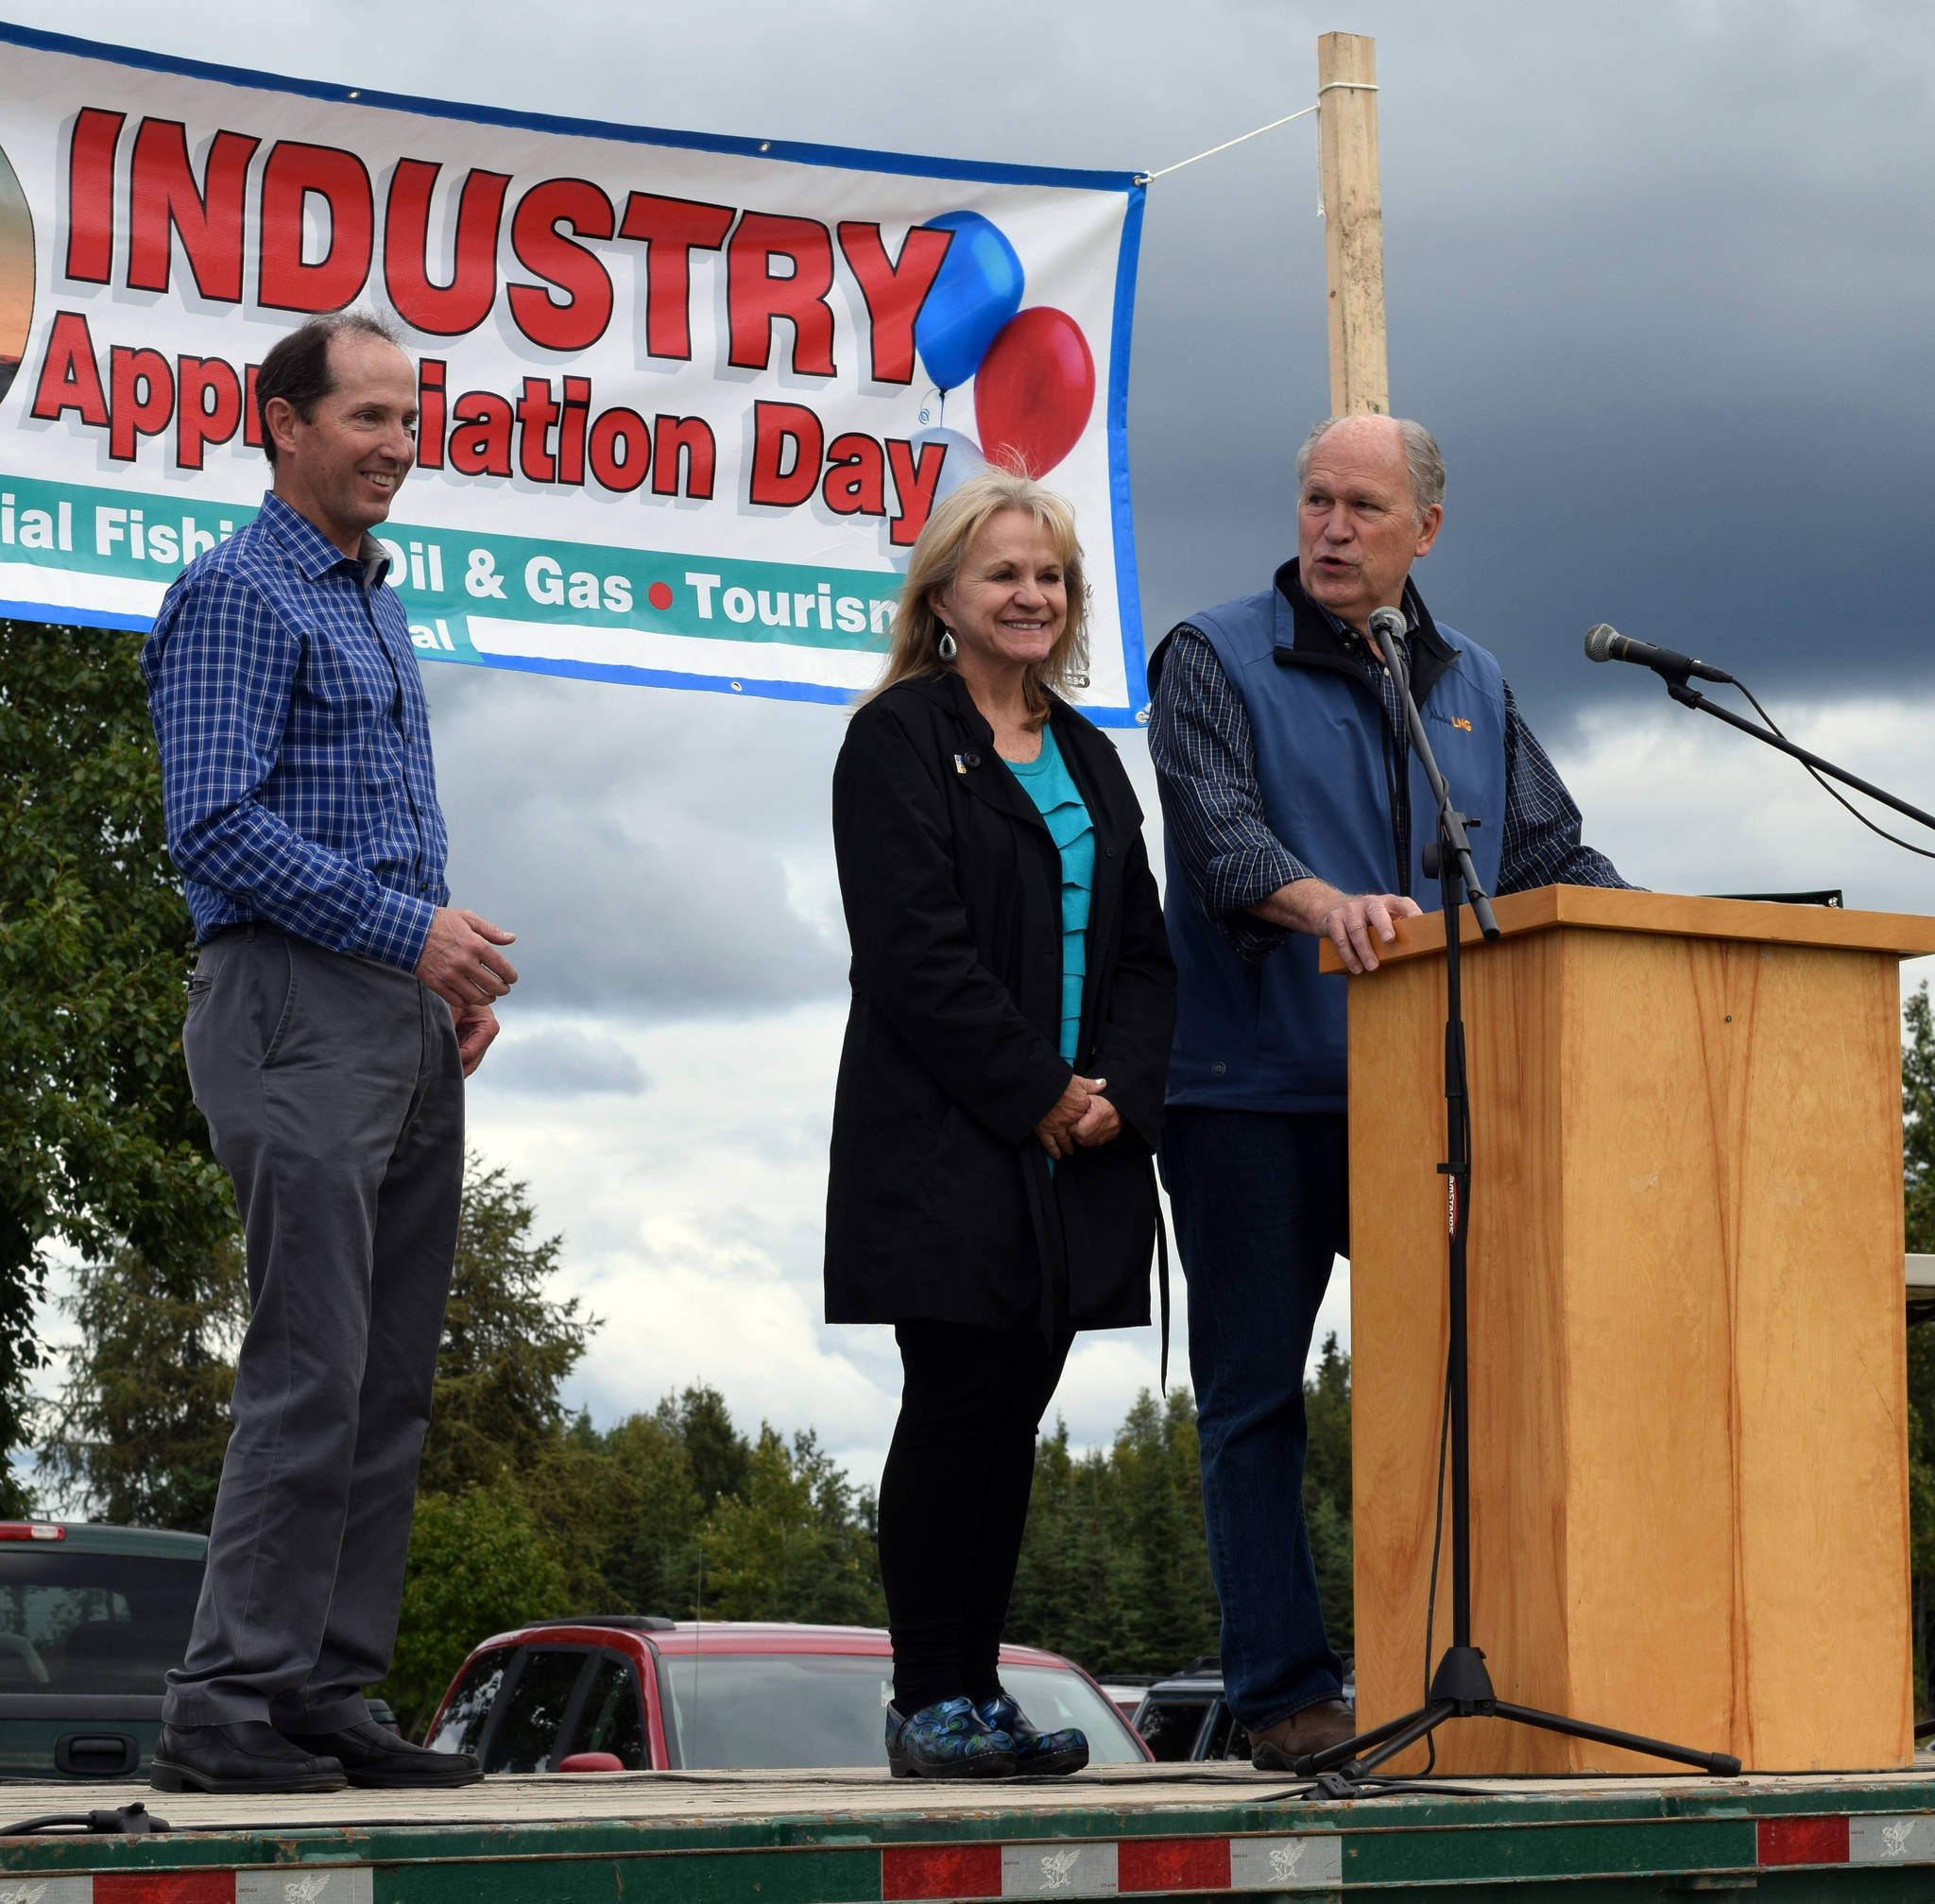 Governor Bill Walker, right, his wife, Donna and Kenai Peninsula Borough Mayor Mike Navarre take the stage during Industry Appreciation Day on Saturday, Aug. 26, 2017 in Kenai, Alaska. (Photo by Kat Sorensen/Peninsula Clarion)